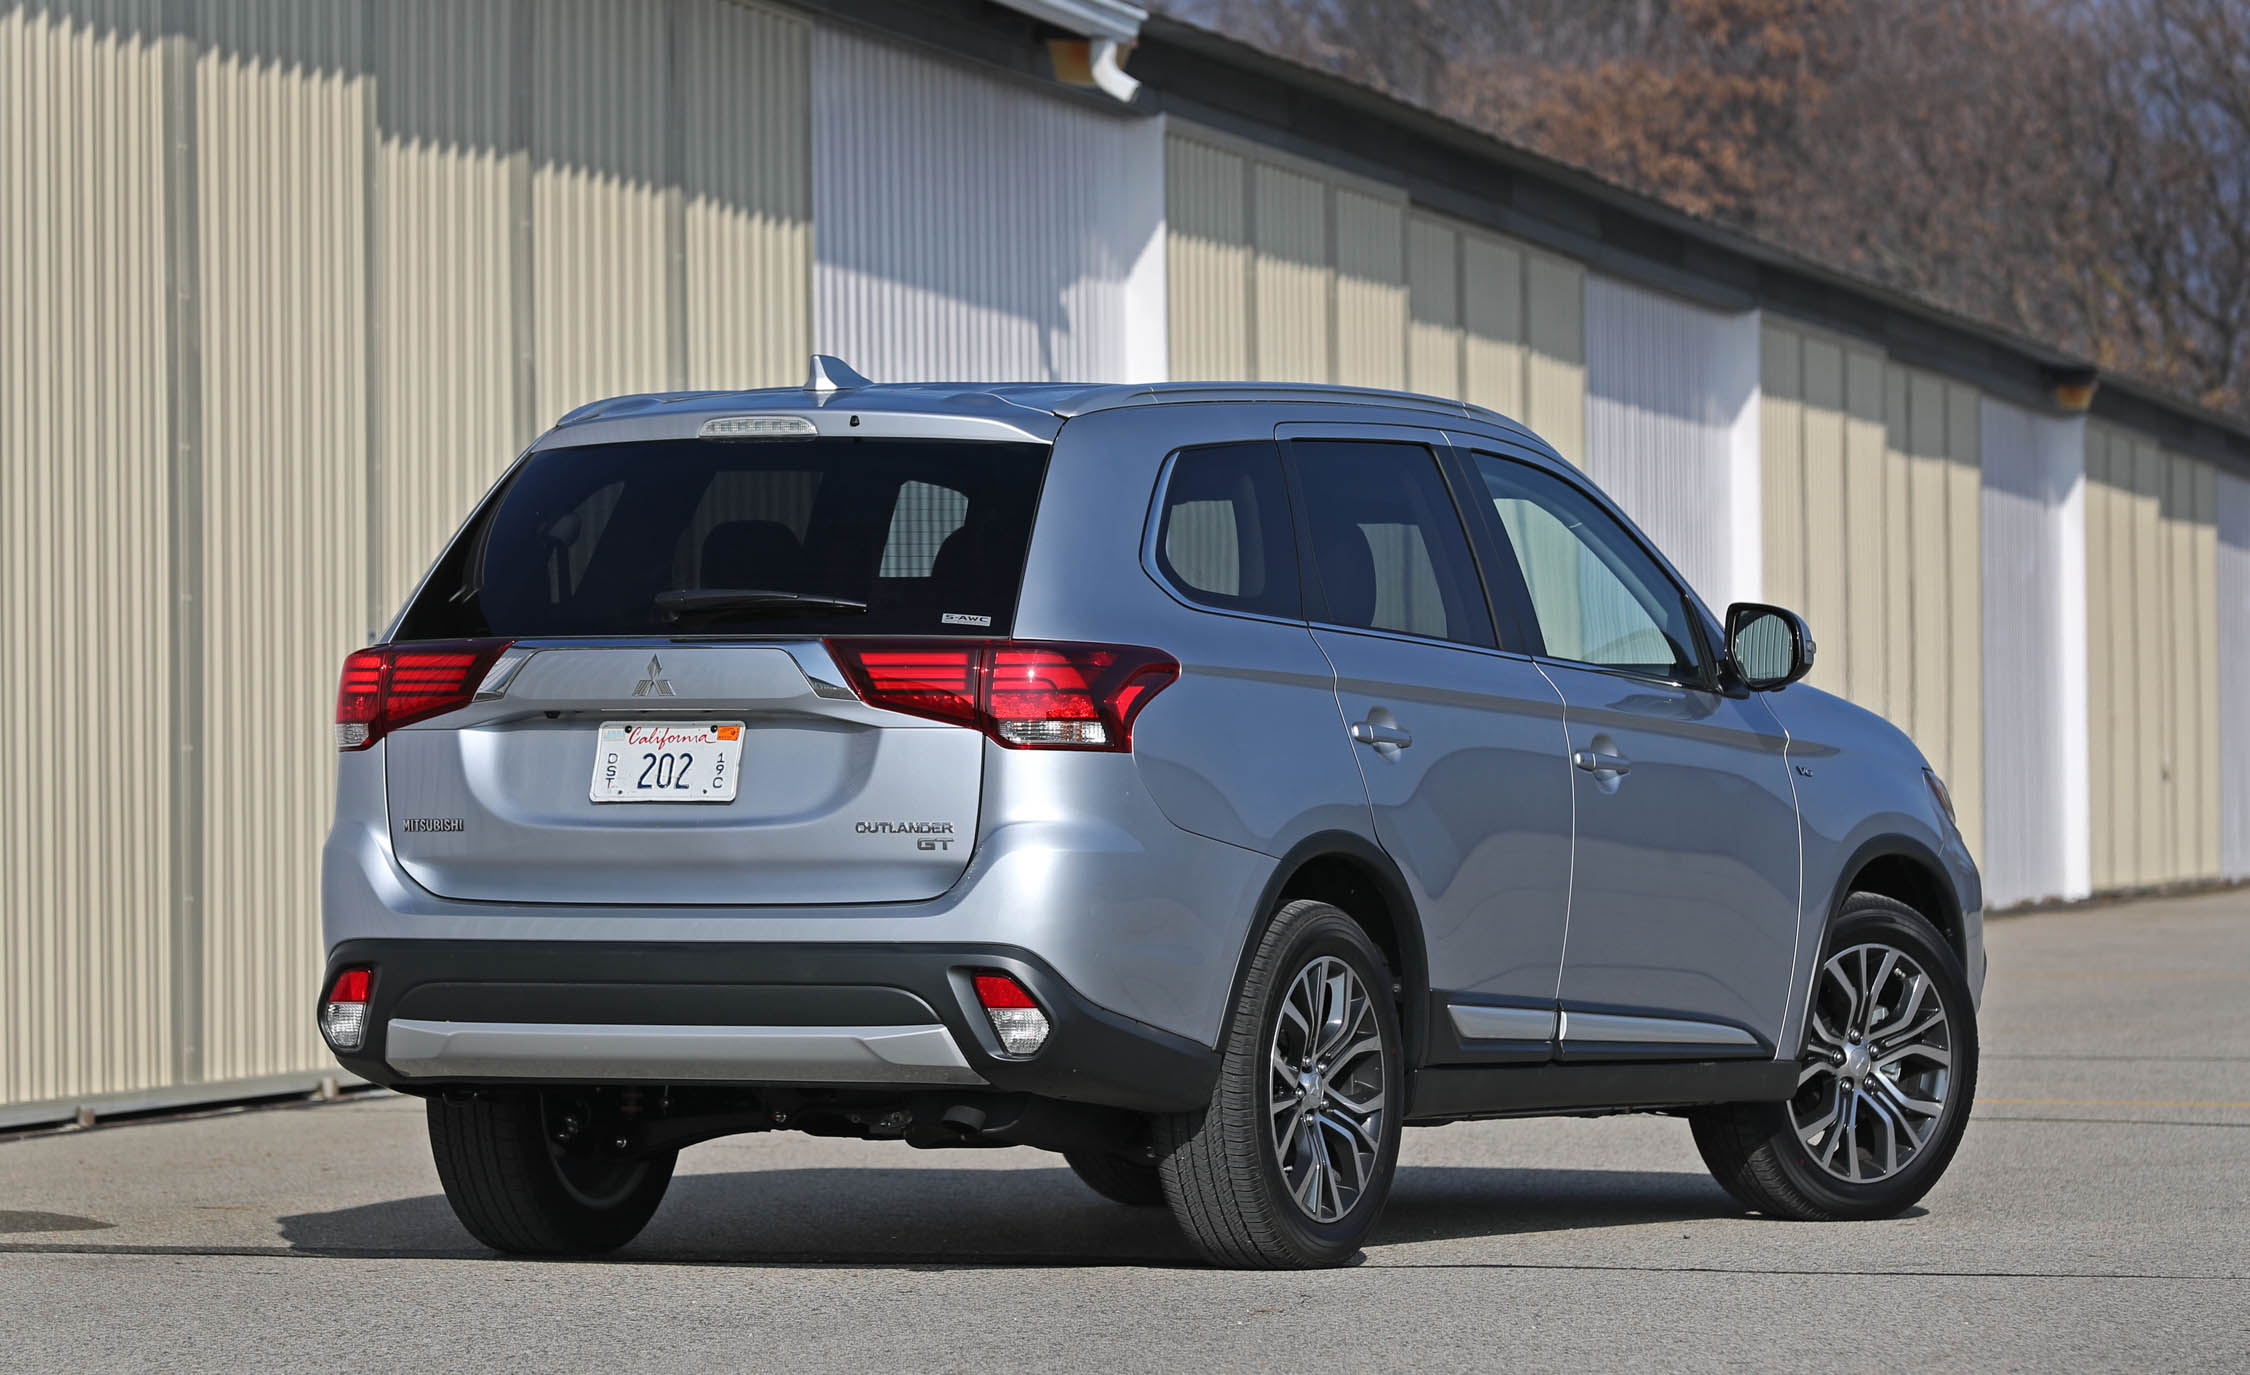 2017 Mitsubishi Outlander Gt Exterior Rear And Side (View 32 of 34)